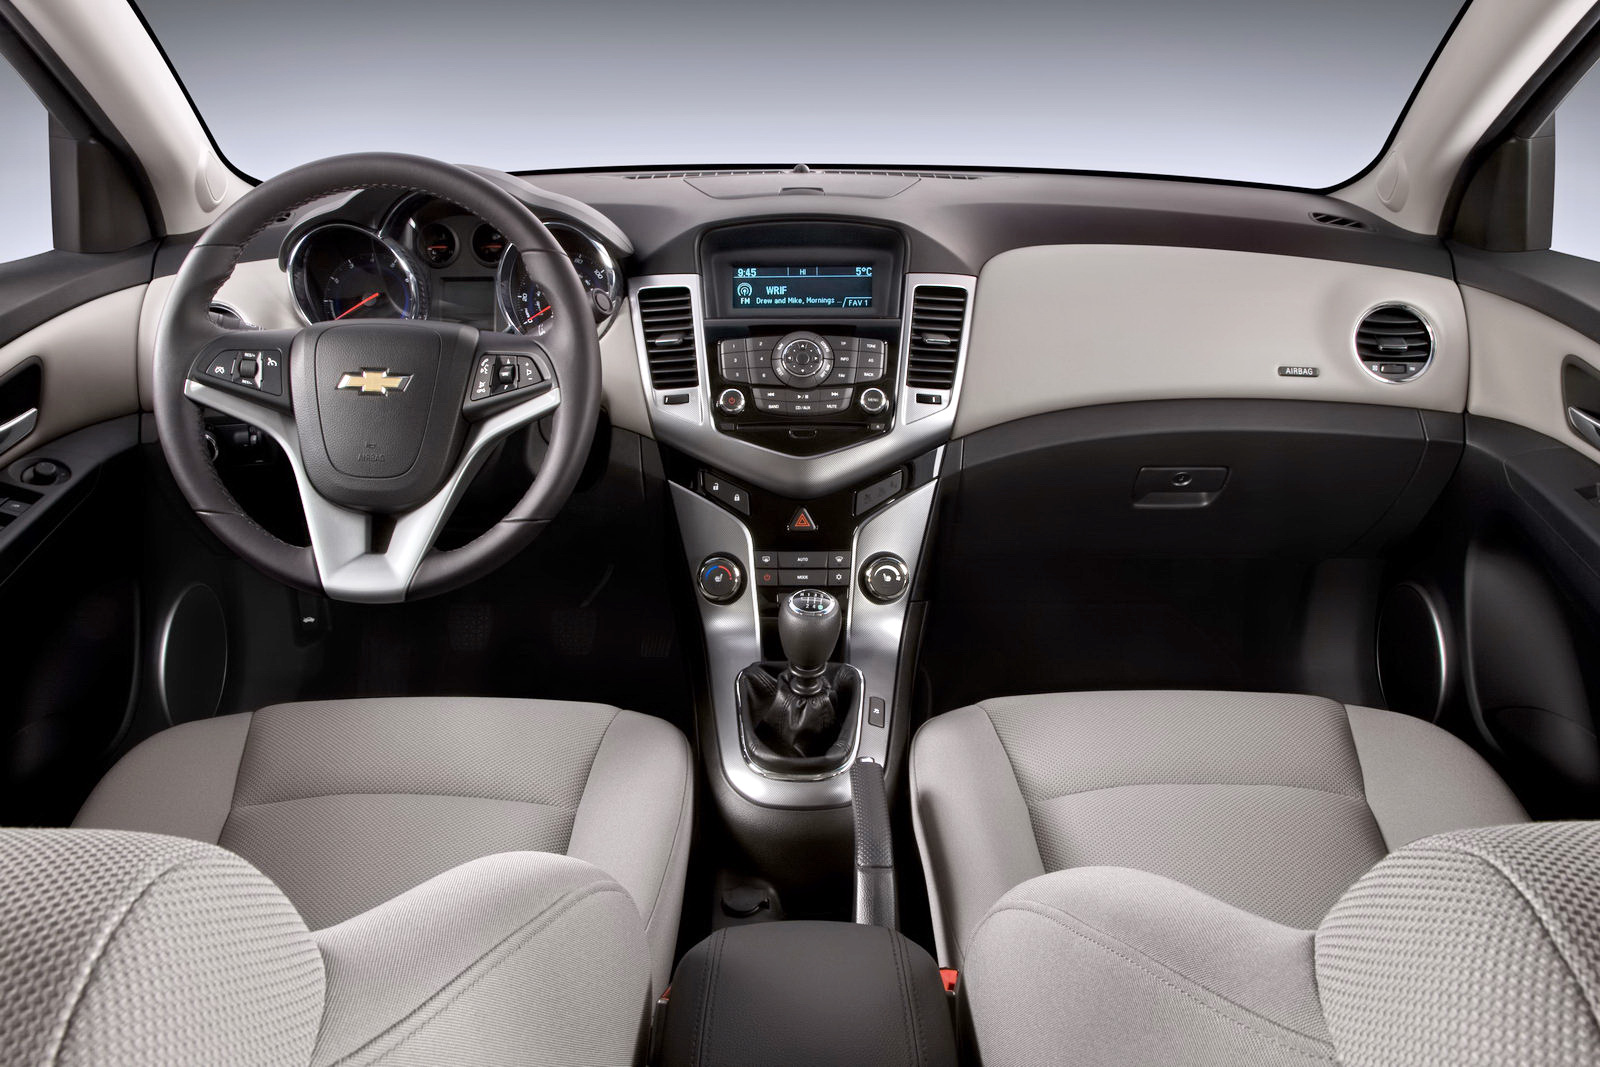 All Chevy chevy cars 2011 : Chevrolet Cruze LS ~ Car Motor